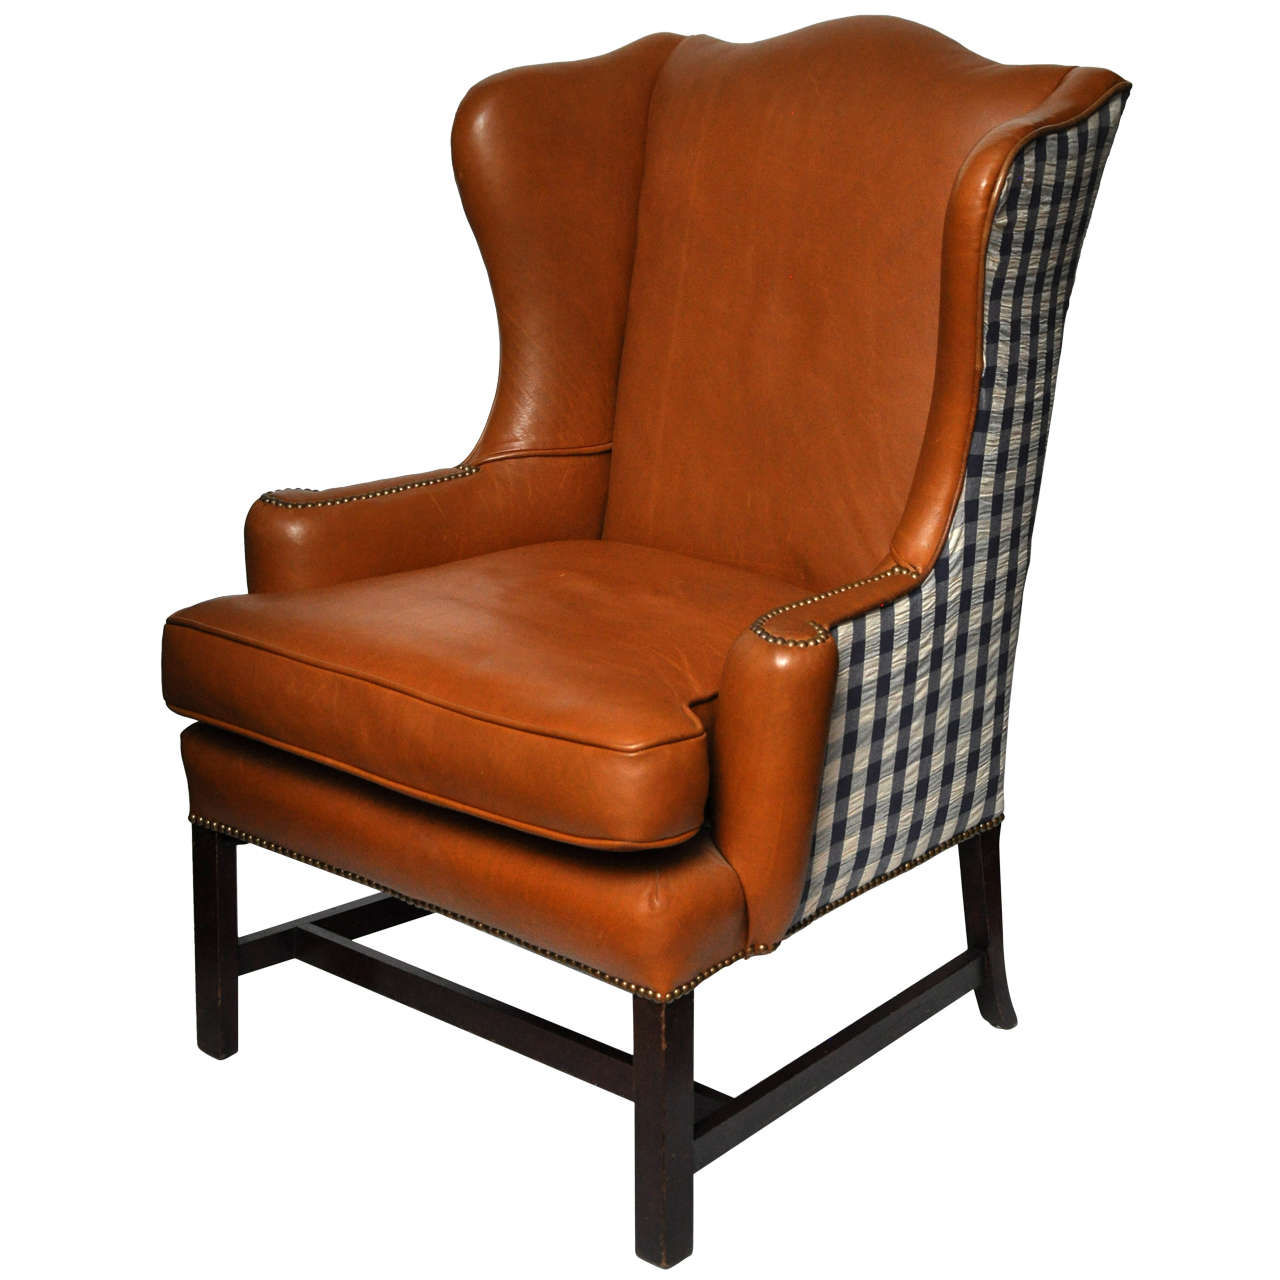 Comfy leather armchair design ideas big comfy leather for Large comfy armchairs